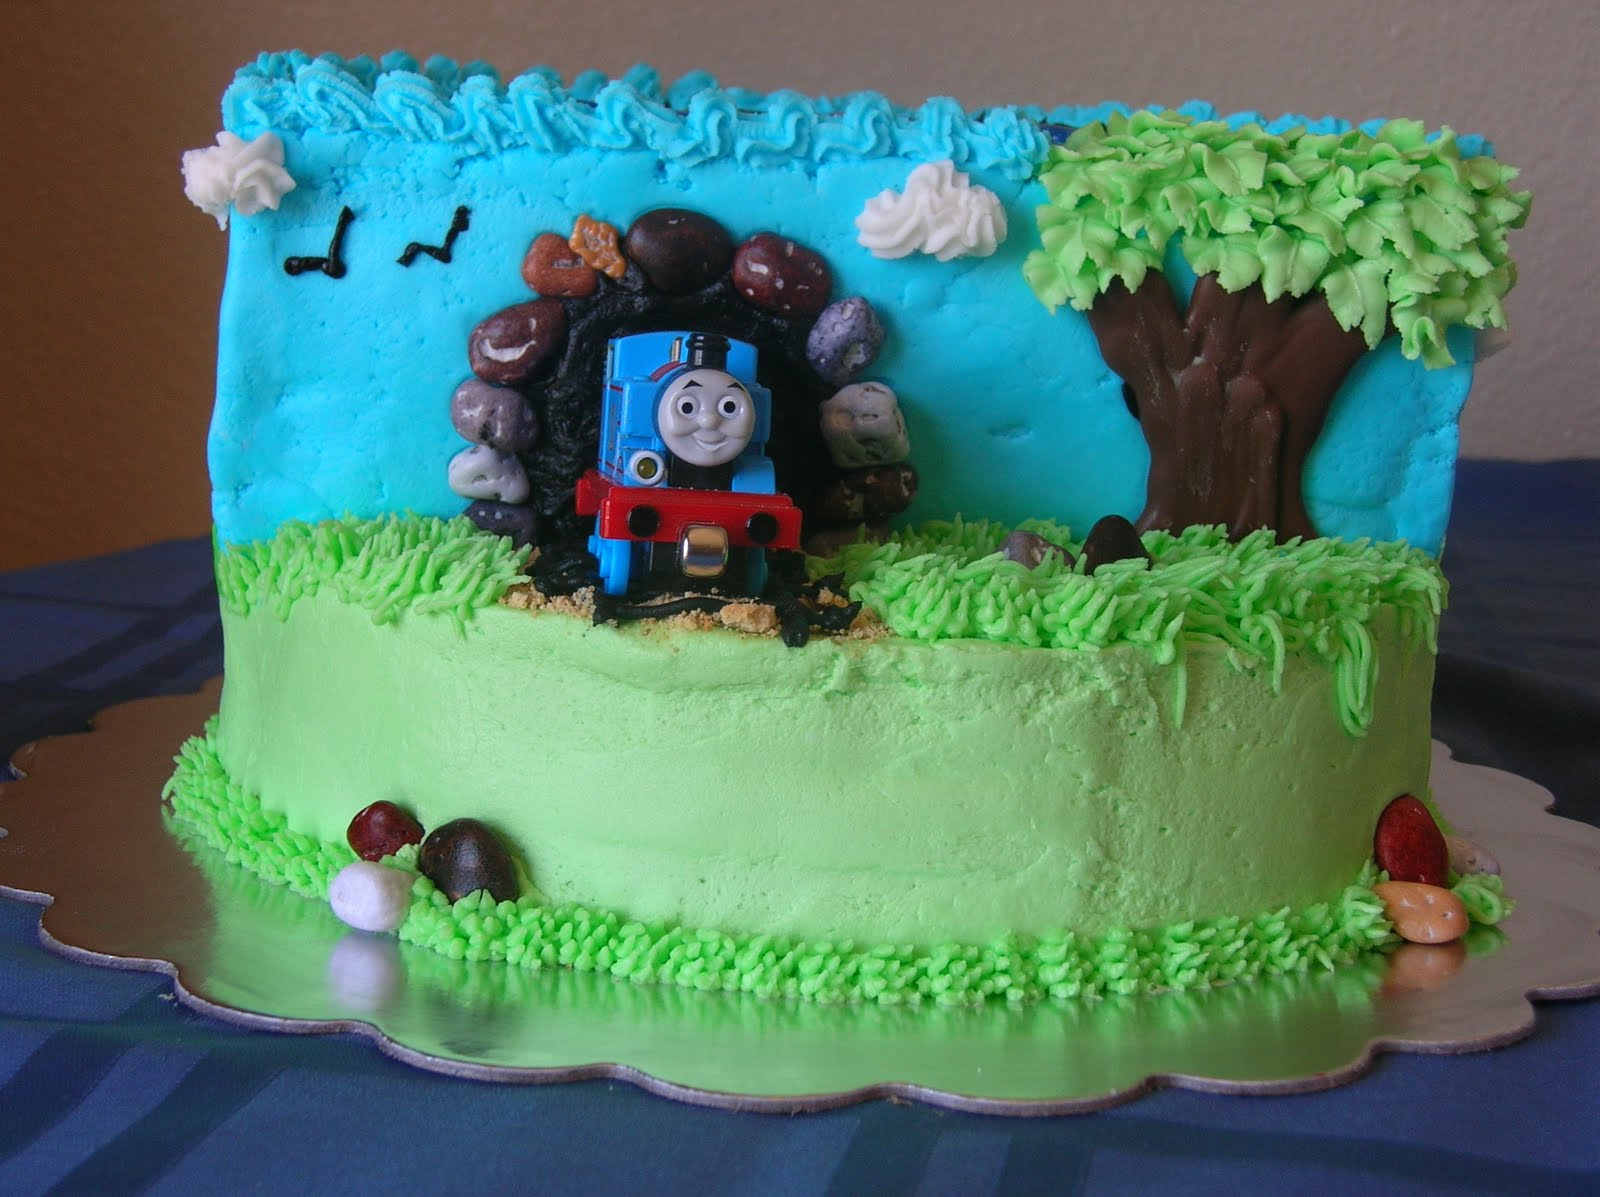 How To Make A Birthday Cake For Boy Obsessed With Thomas The Train